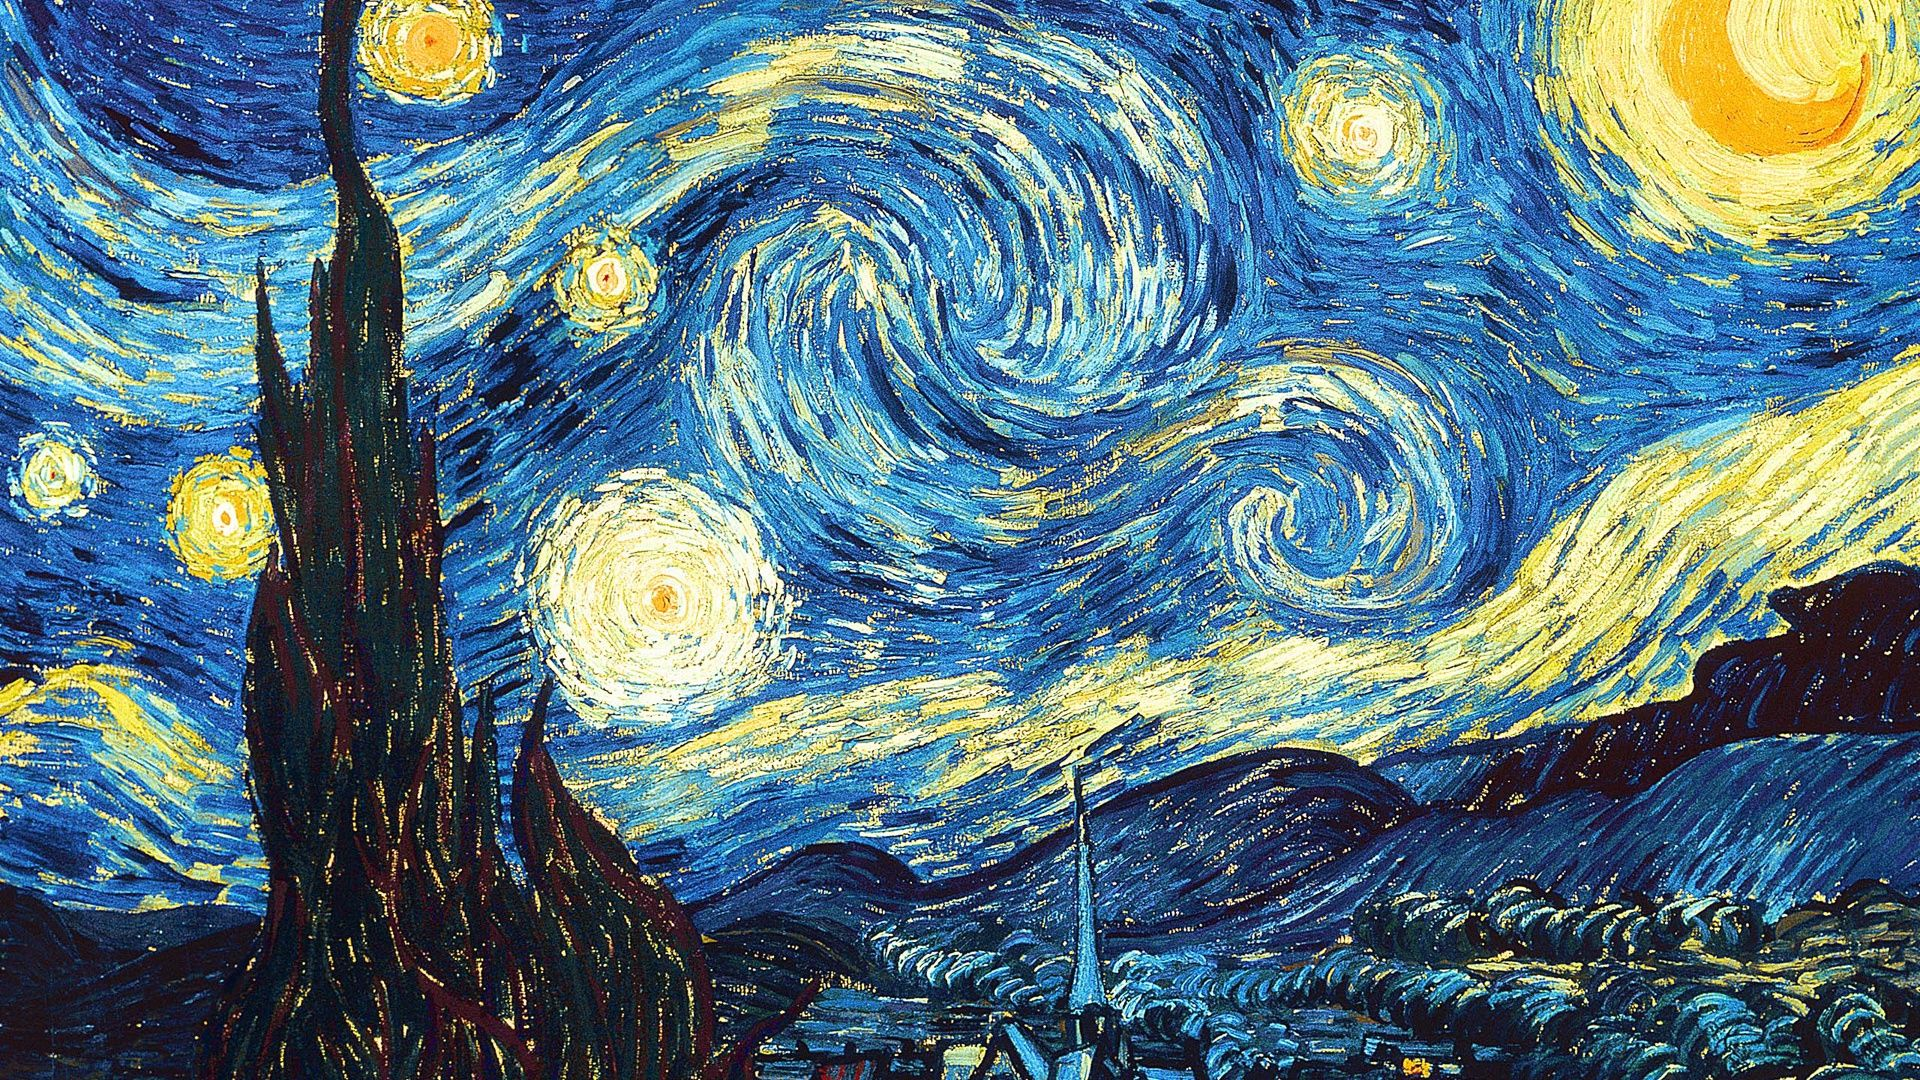 vincent van gogh starry night wallpaper 1920x1080